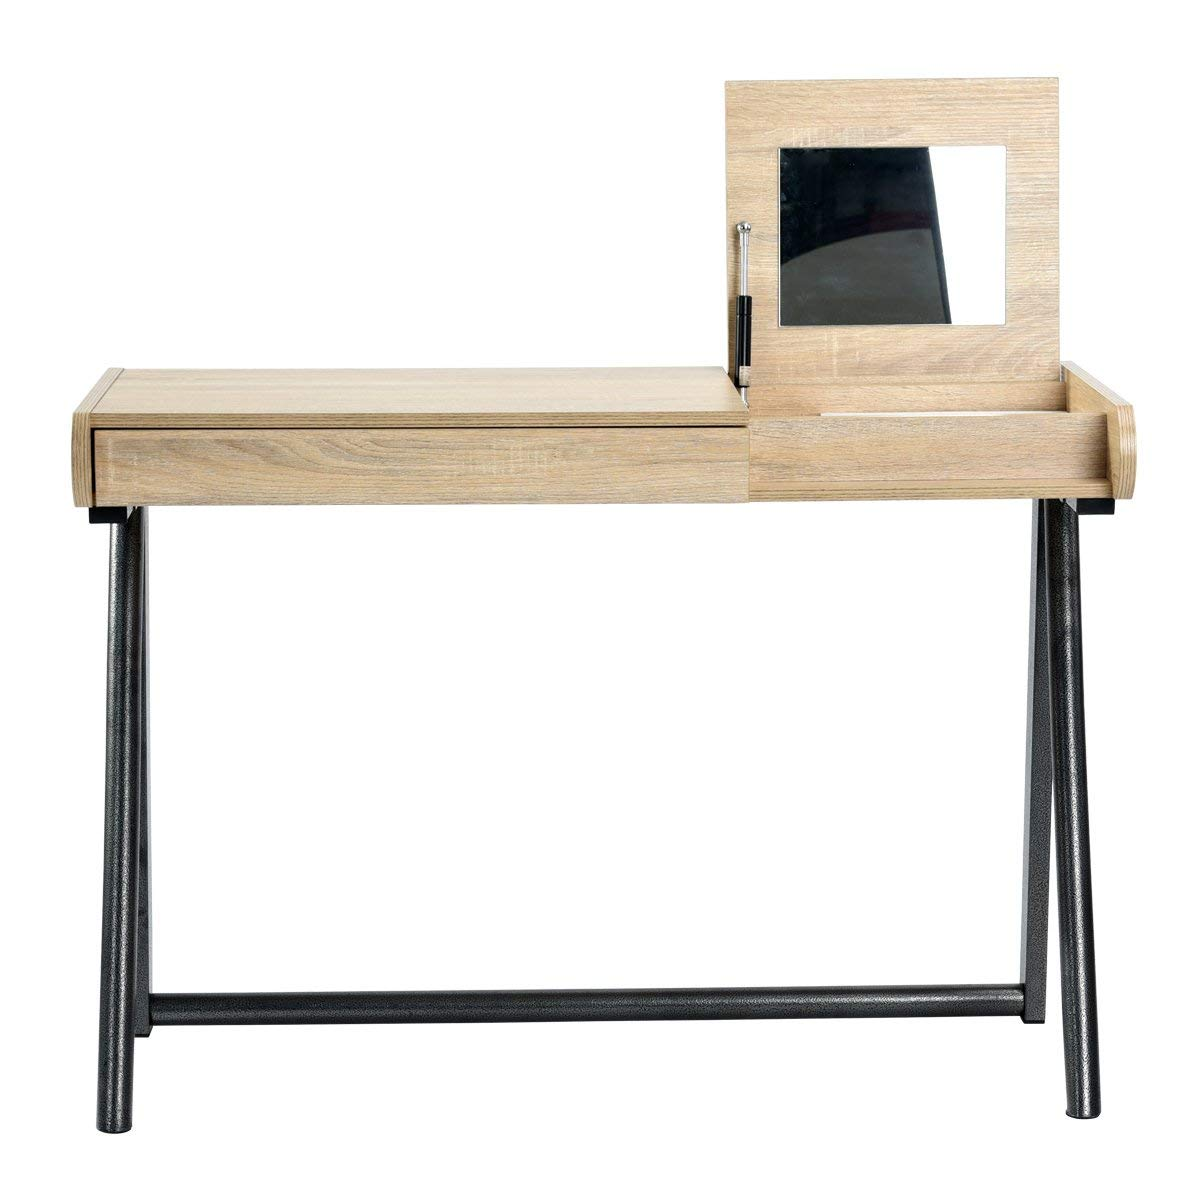 Hidden Desk Cheap Hidden Desk Find Hidden Desk Deals On Line At Alibaba